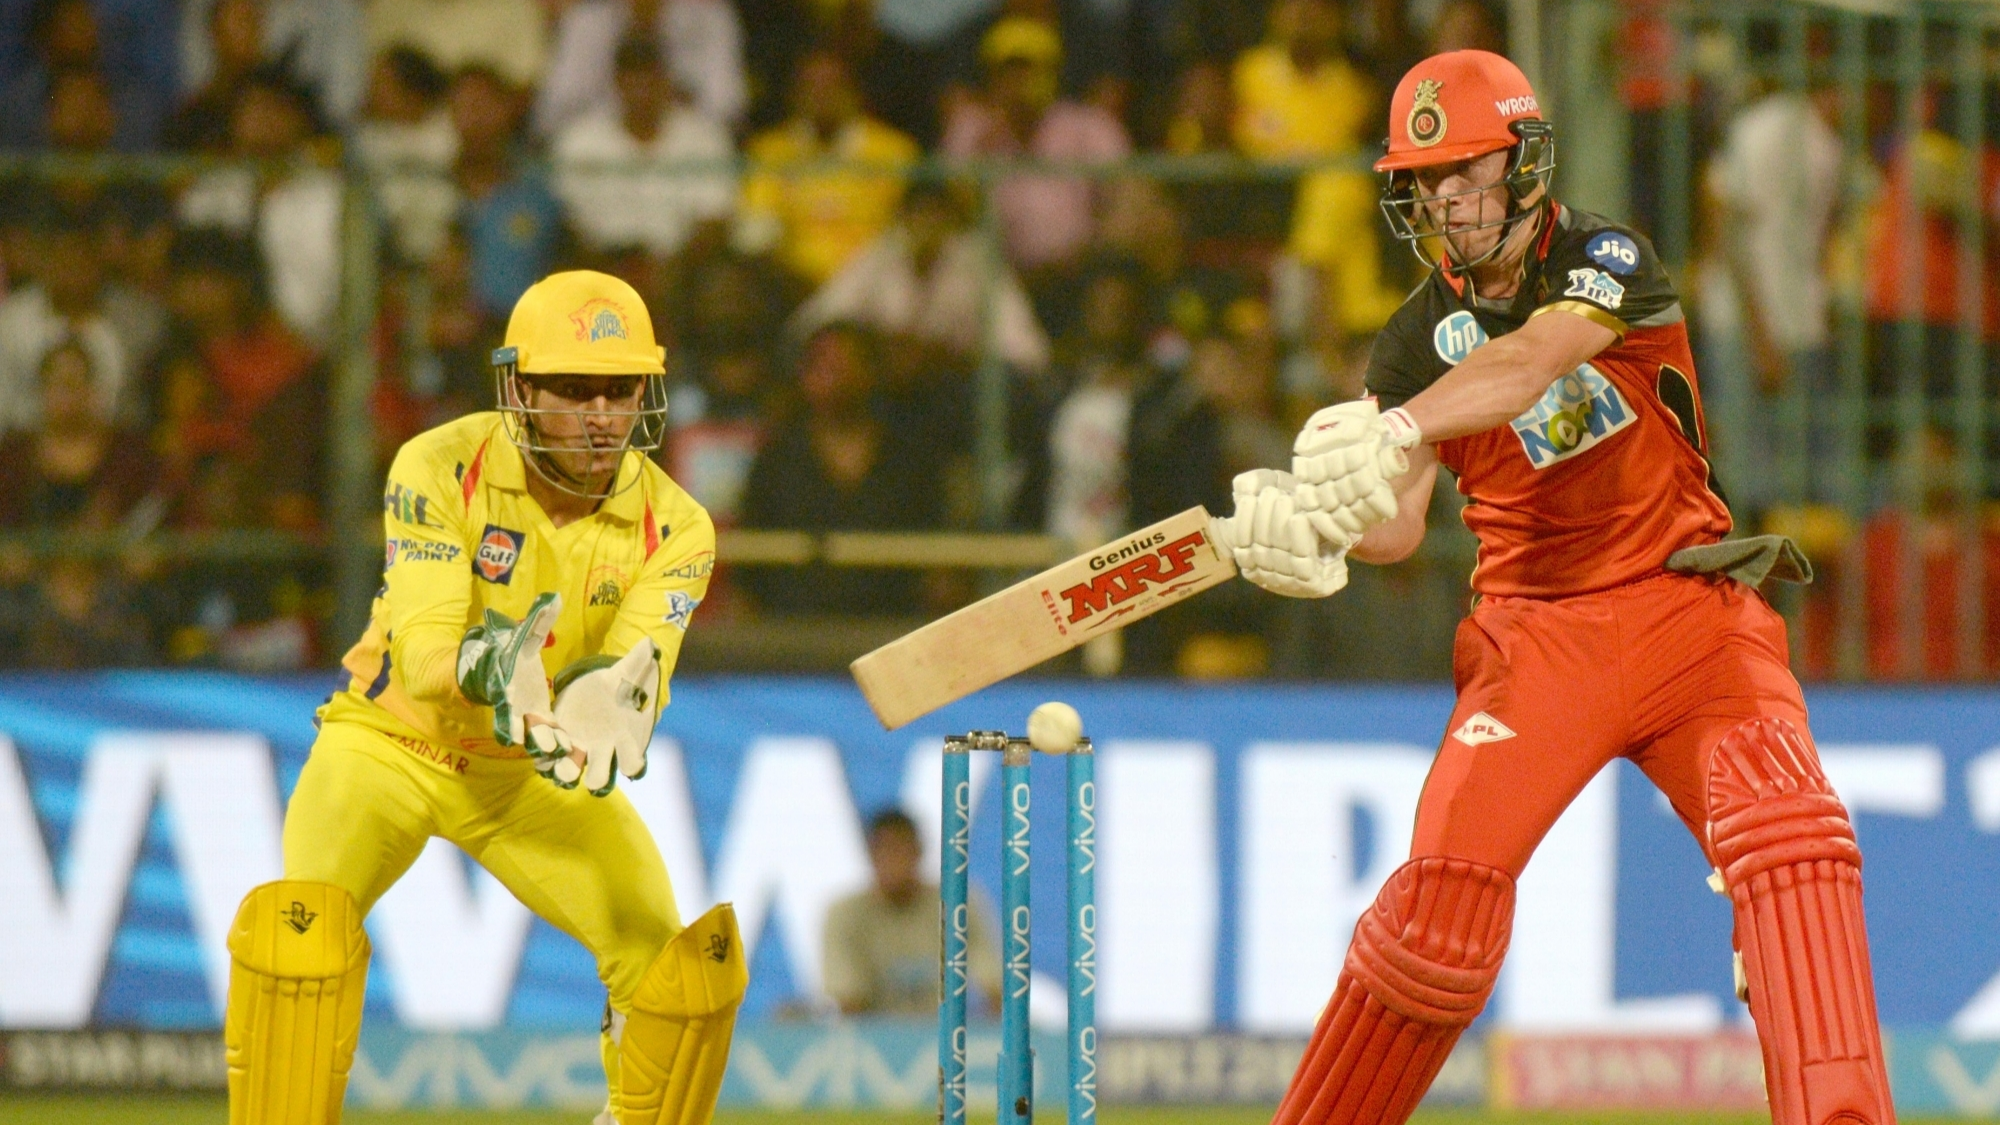 IPL 2018: Twitter reacts after AB De Villiers' quickfire 68 takes RCB to 205/8